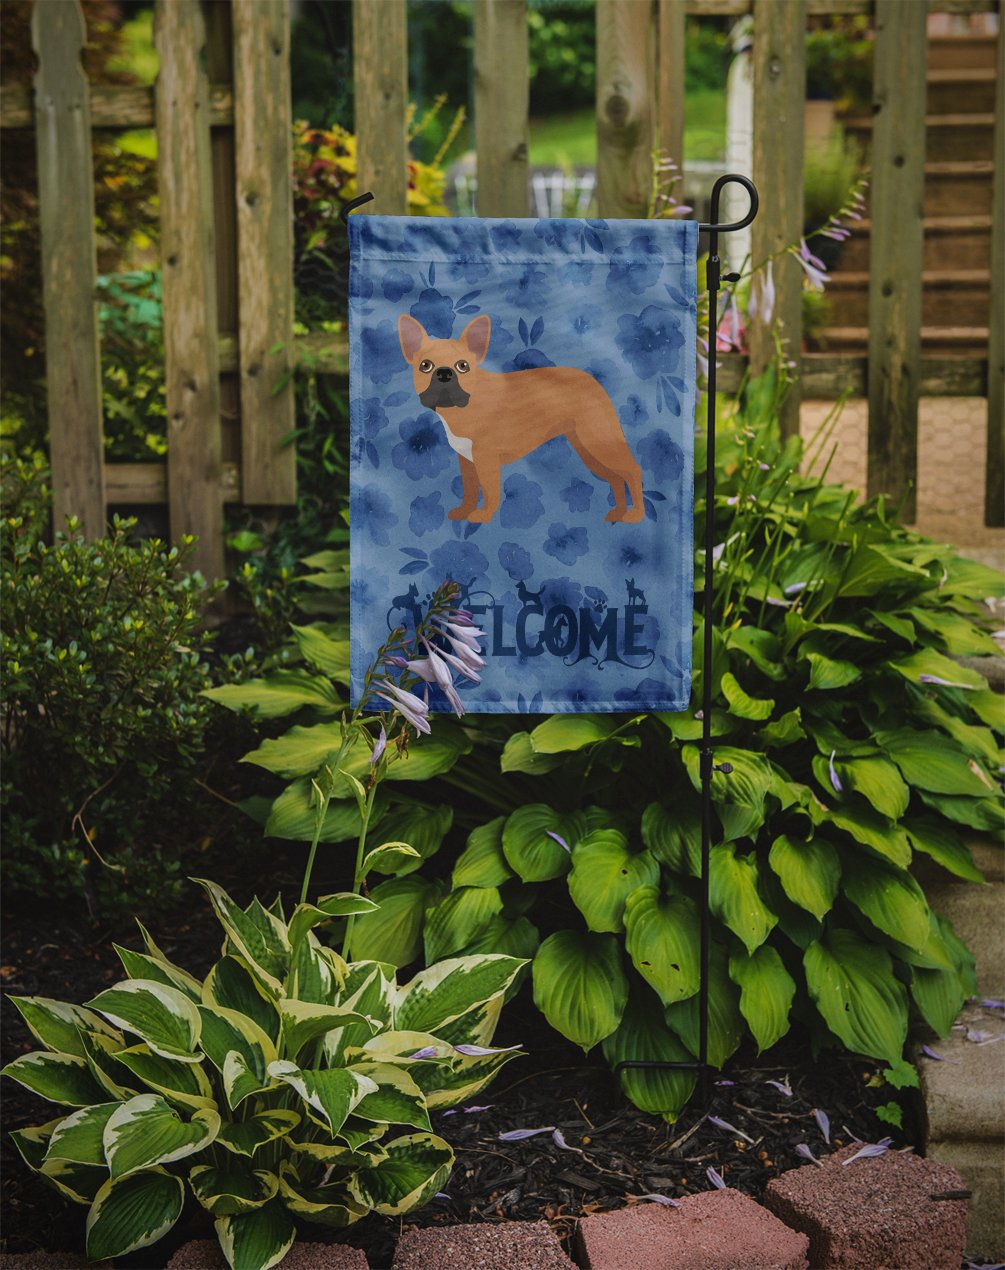 French Bulldog #2 Welcome Flag Garden Size CK5992GF by Caroline's Treasures